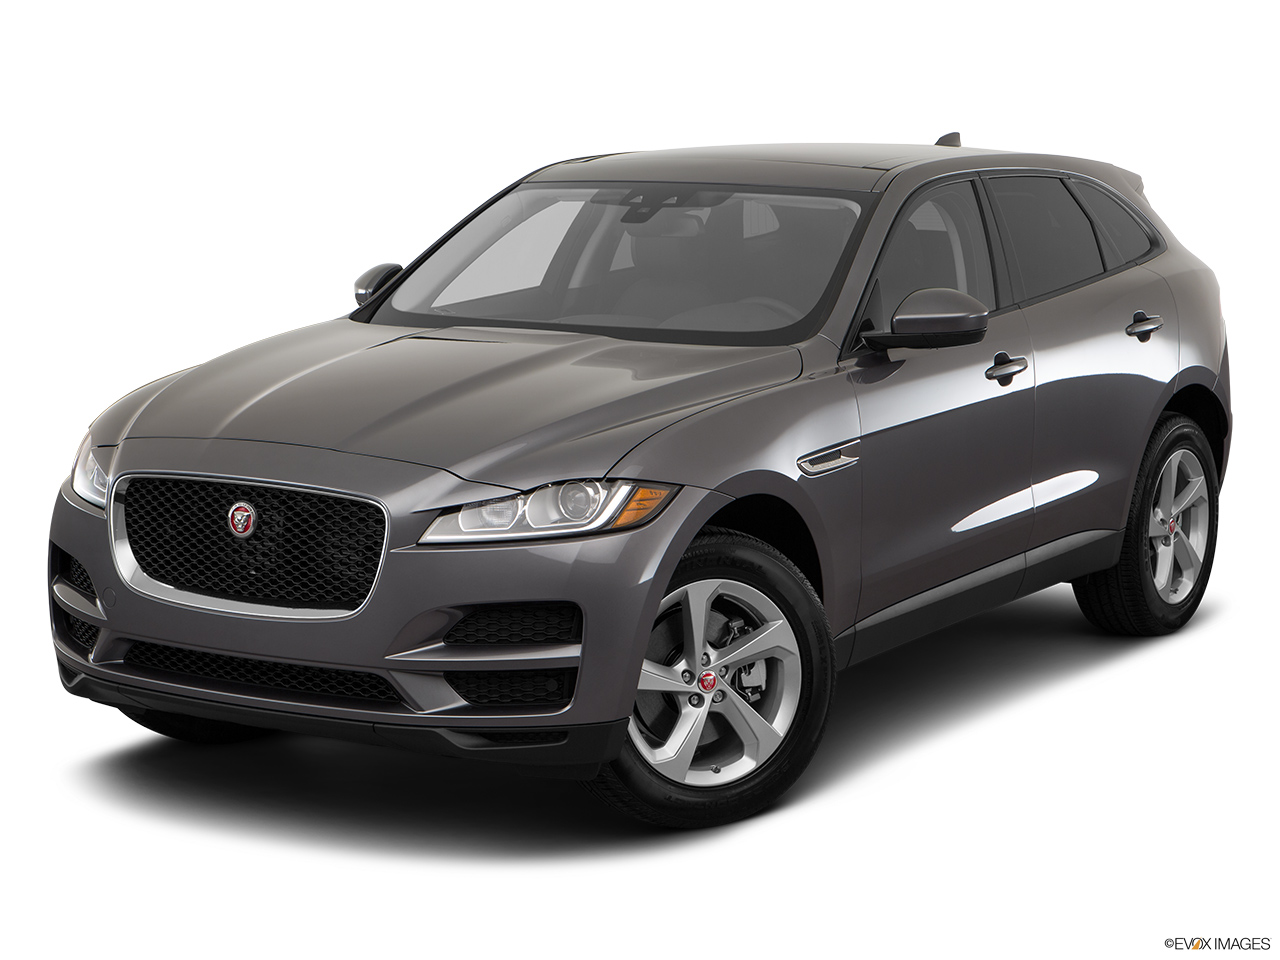 car features list for jaguar f pace 2017 2 0t portfolio 250 ps bahrain yallamotor. Black Bedroom Furniture Sets. Home Design Ideas